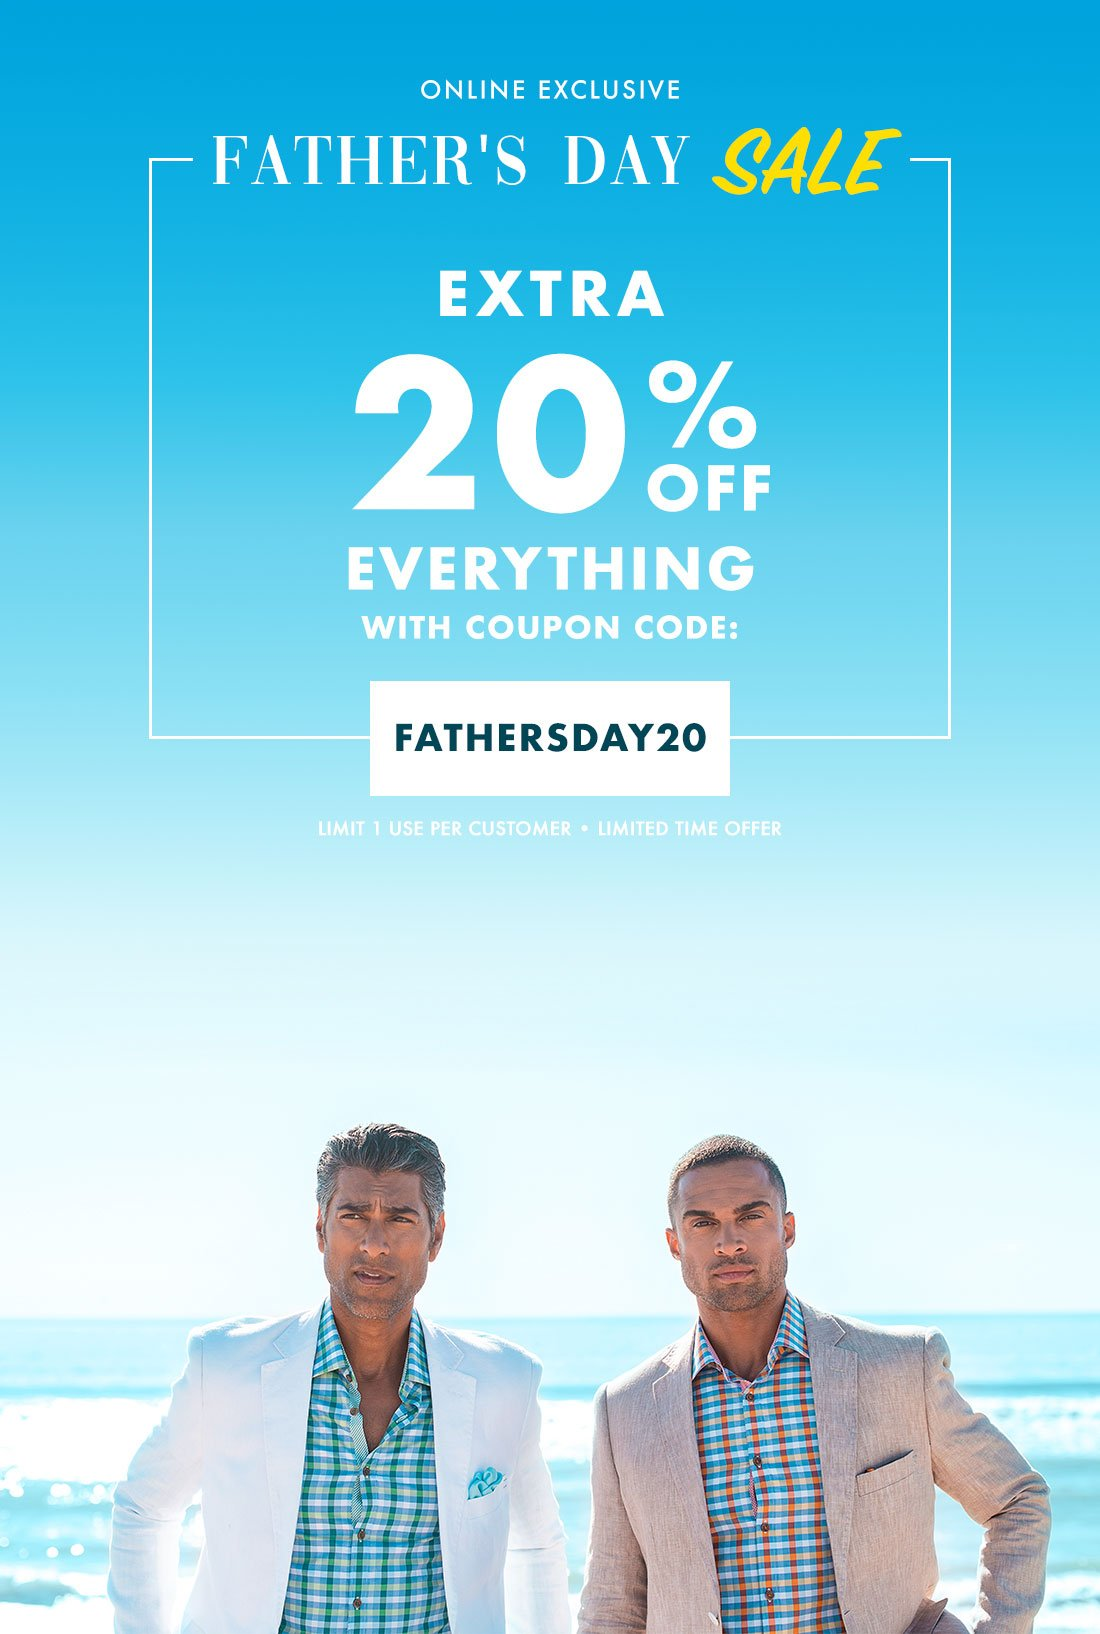 13bd24de91aba2 Bachrach: Dad's Big Day | Extra 20% Off Everything - Coupon Inside ...